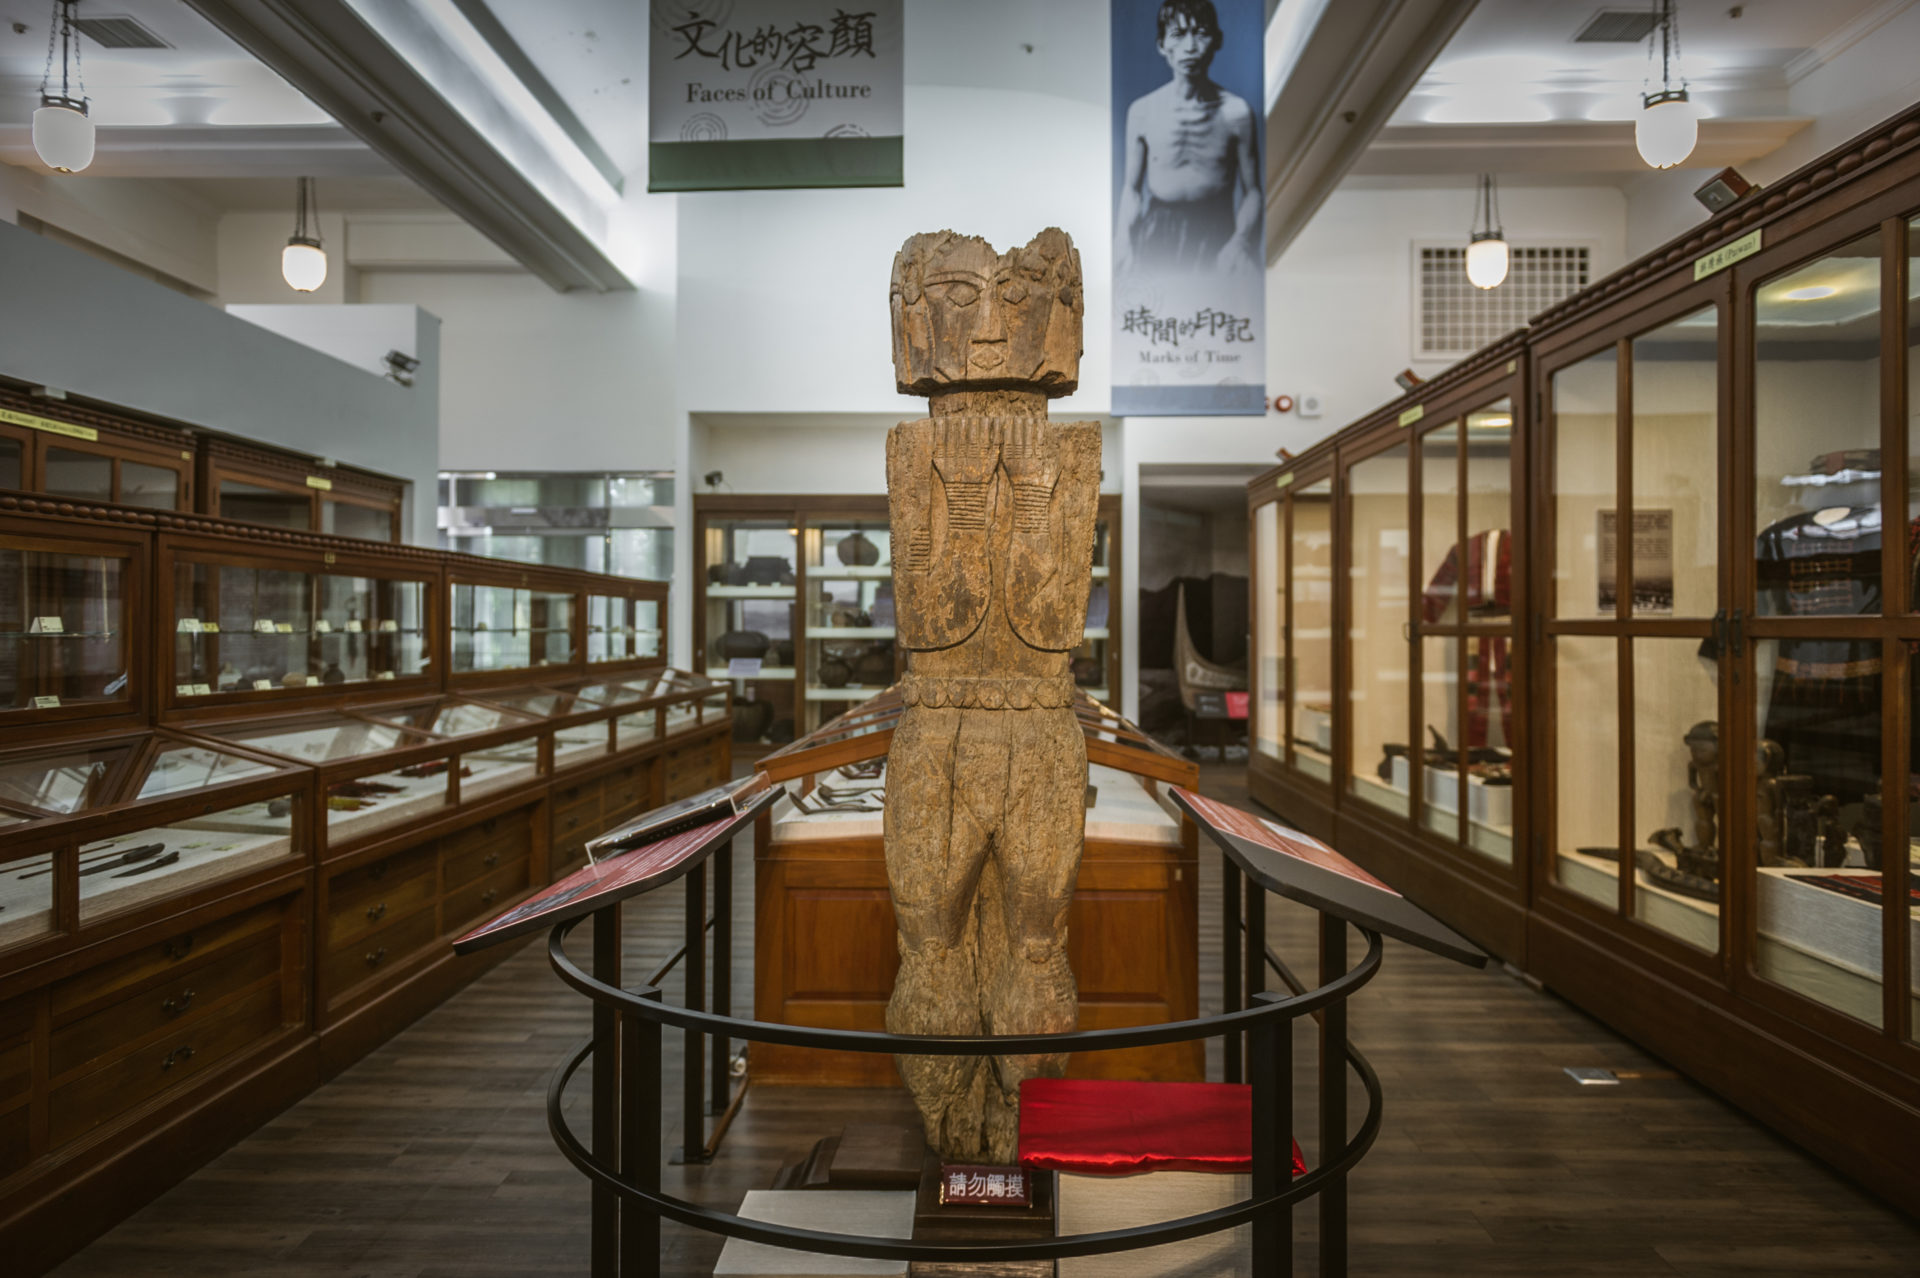 【Museums Link Asia-Pacific】World's First National Treasure Wedding – How Museums and Tribes are Connected through Artefacts